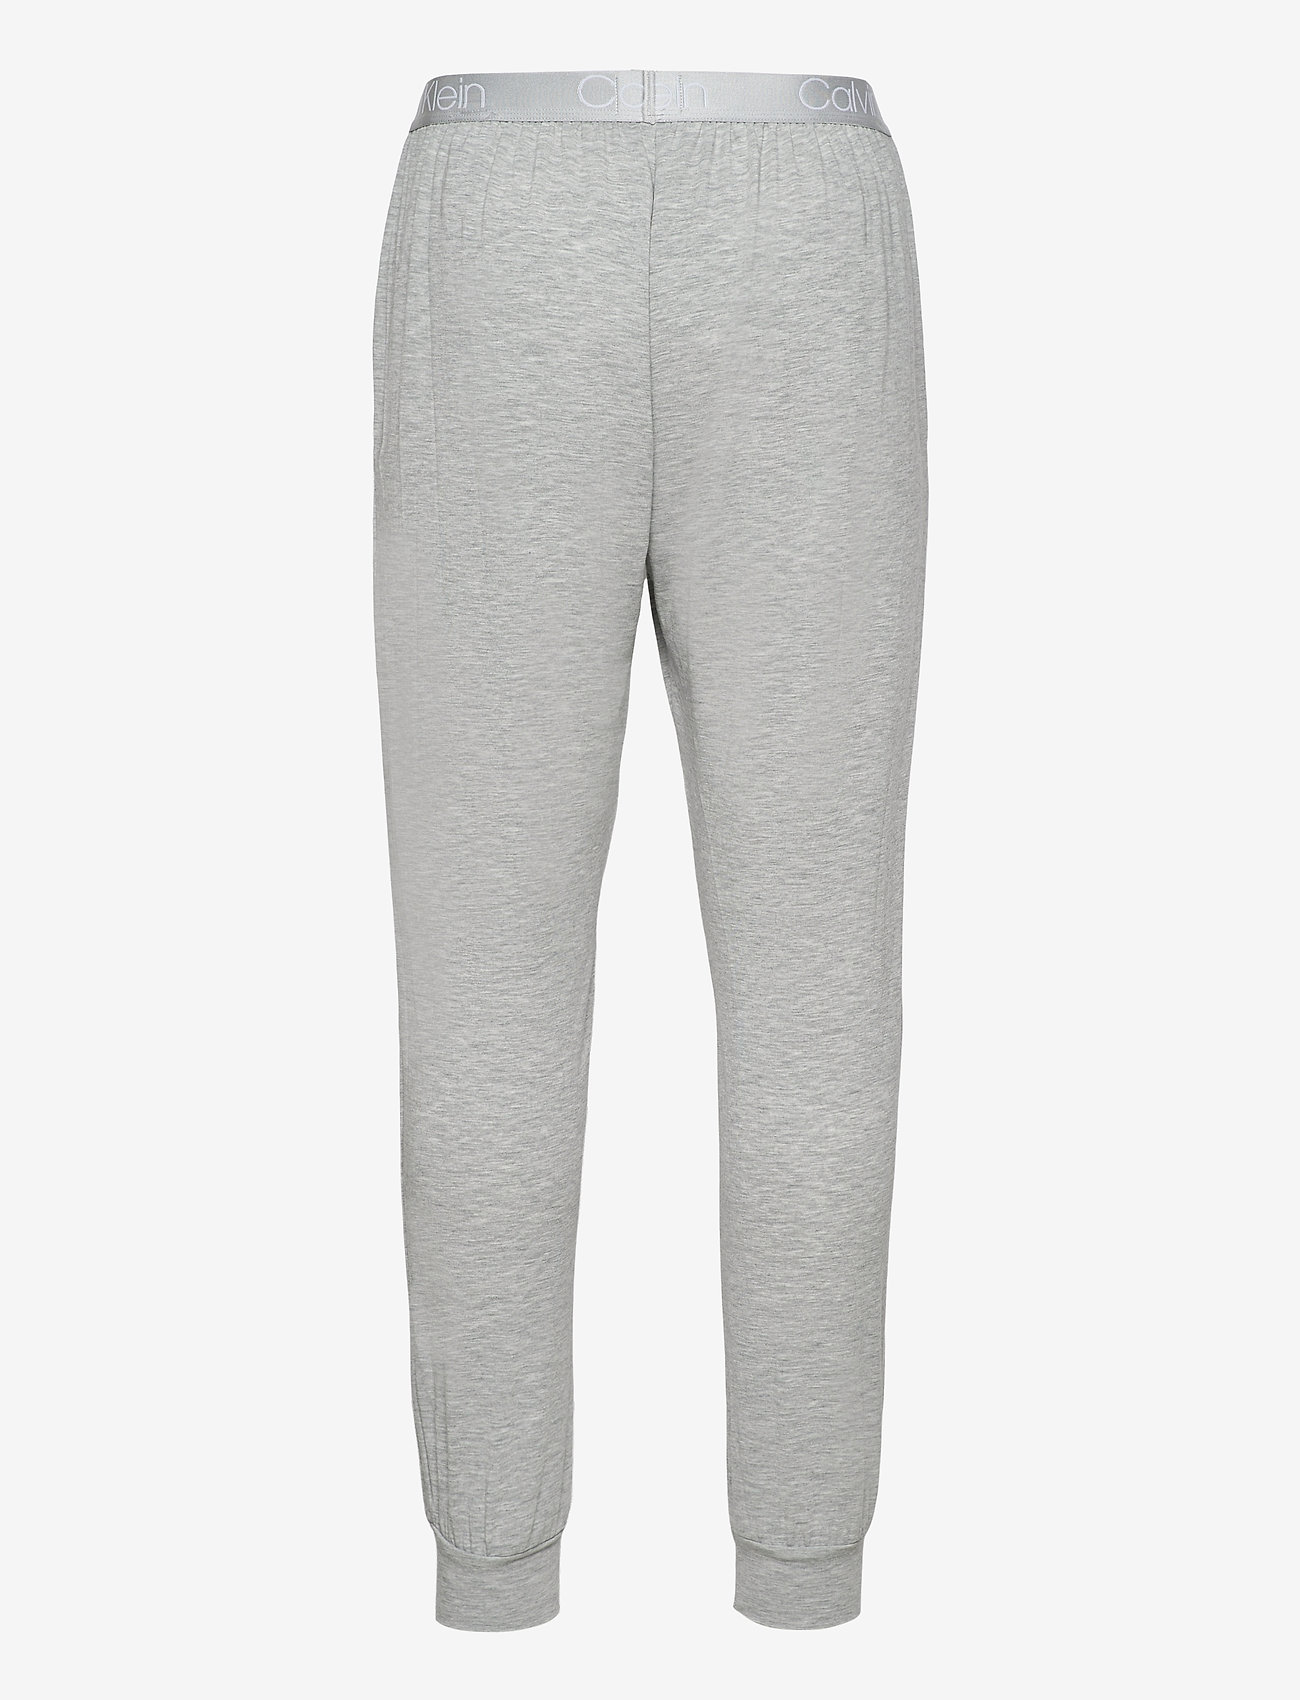 Calvin Klein - JOGGER - bottoms - grey heather - 1